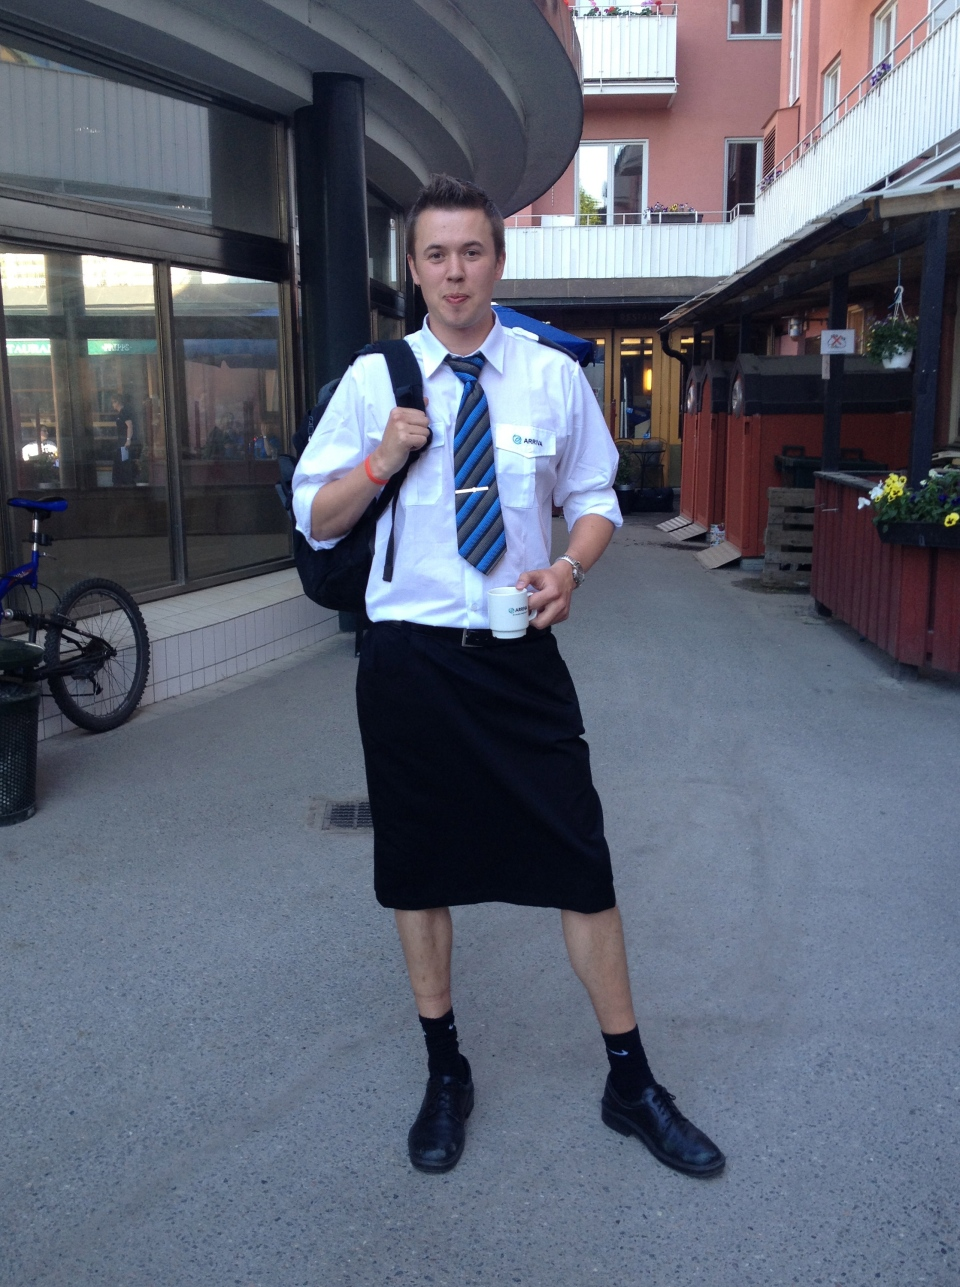 Swedish train driver Martin Akersten poses wearing a skirt with his cell phone in Stockholm on May 31, 2013. (AP / Kim Jensen)